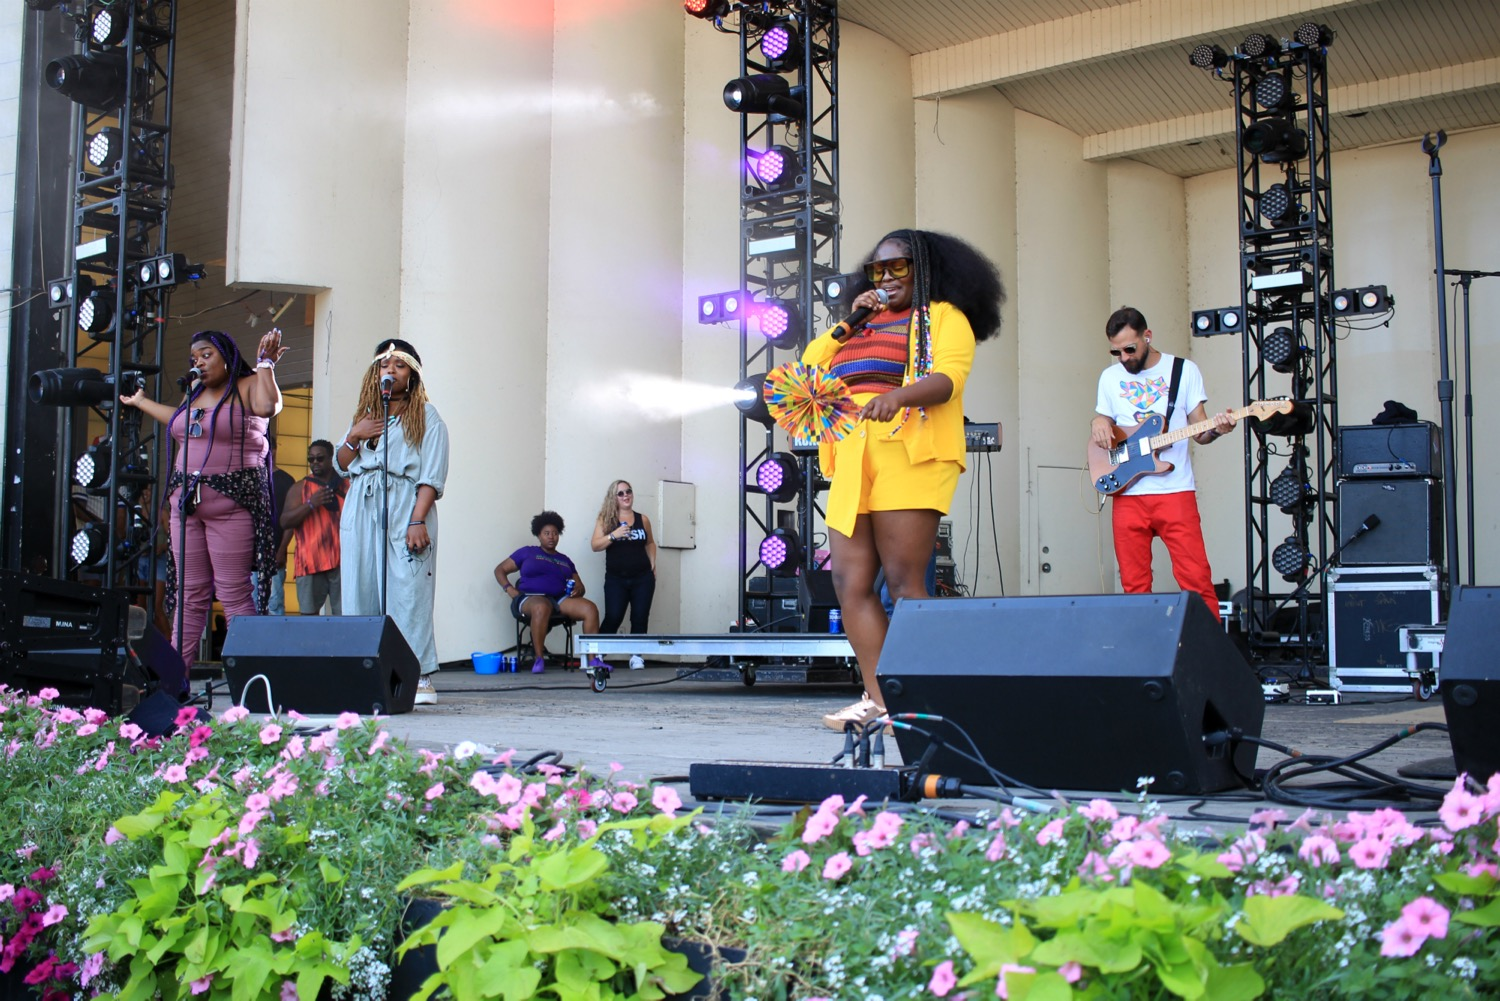 Tank and the Bangas, Lollapalooza 2018, photo by Heather Kaplan